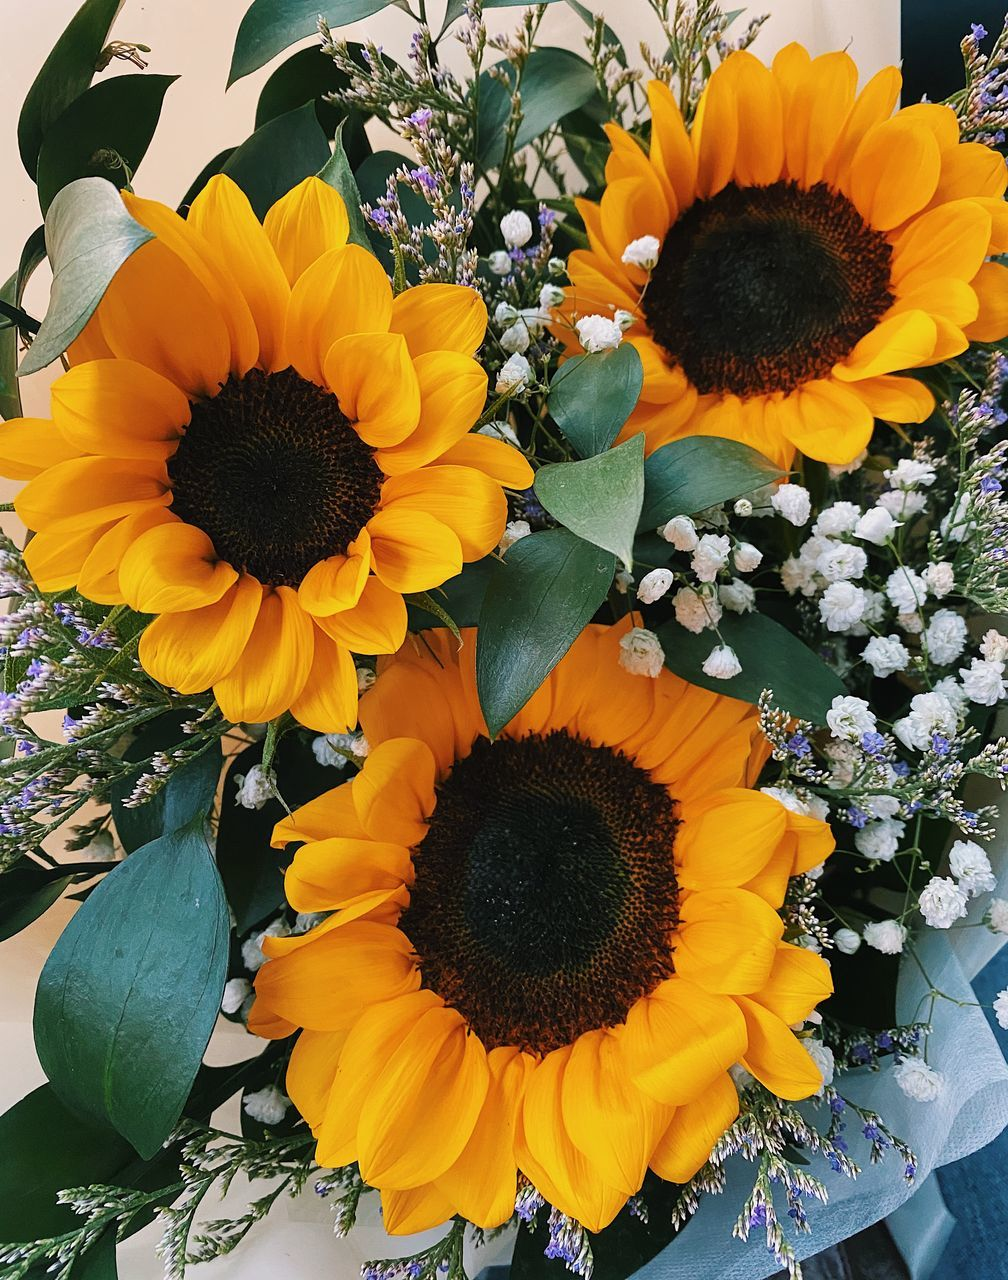 HIGH ANGLE VIEW OF SUNFLOWERS ON SUNFLOWER